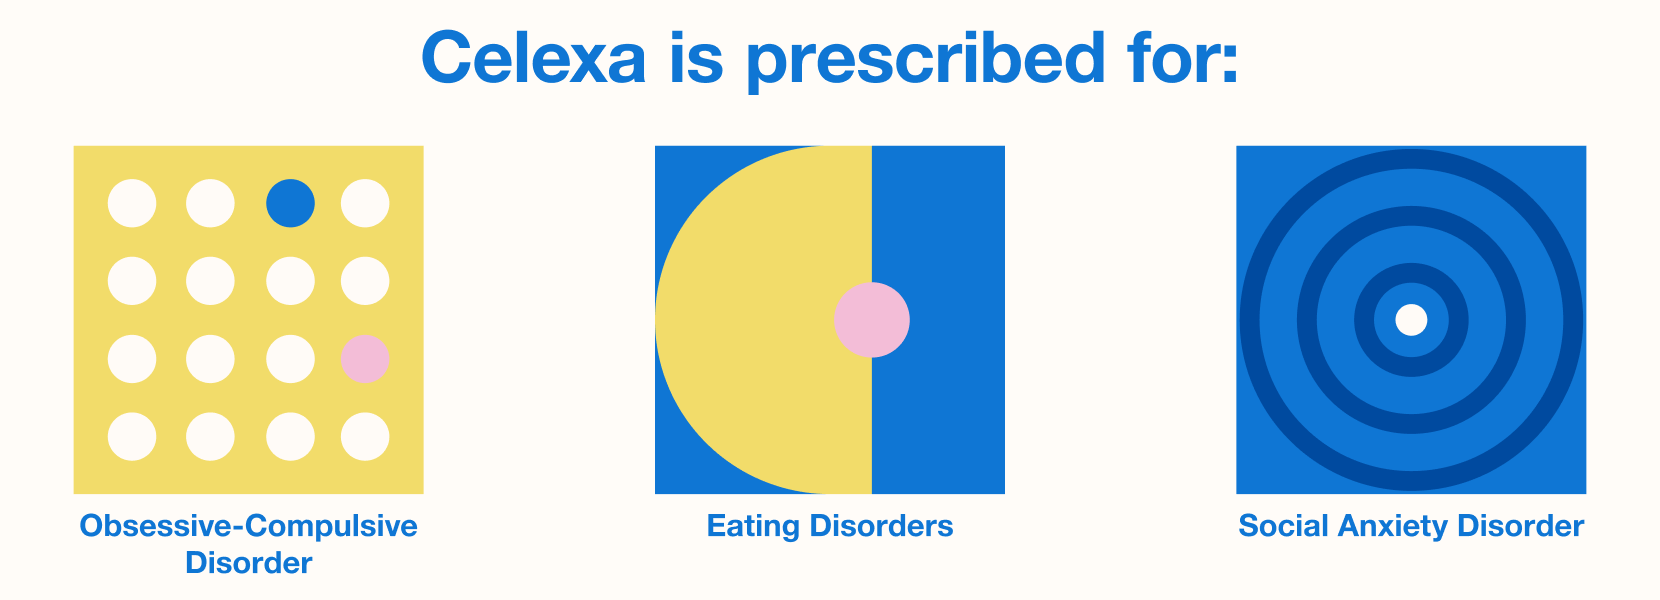 What Celexa is prescribed for